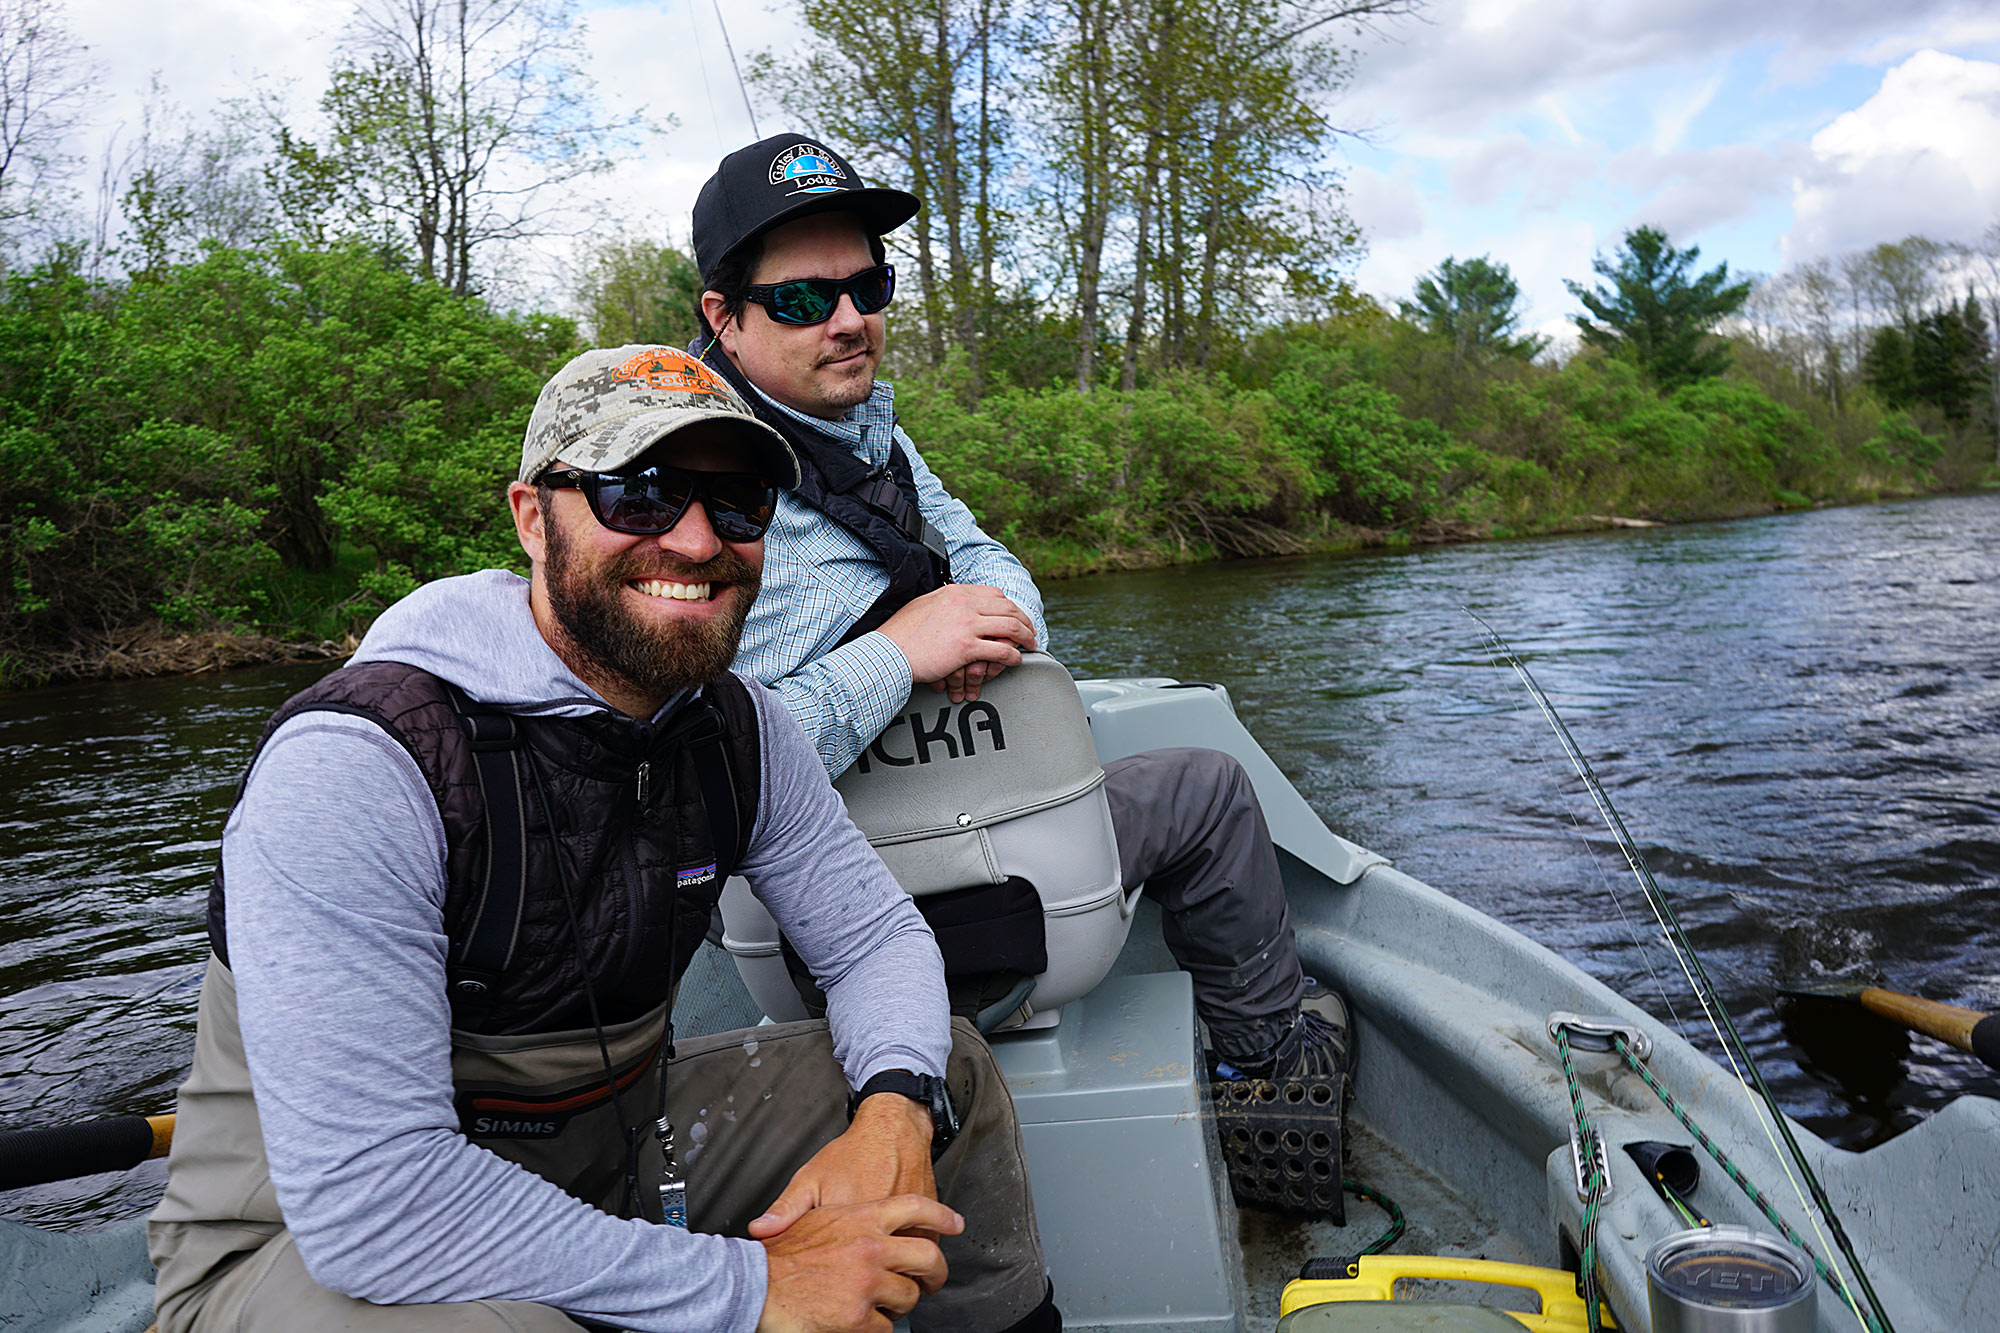 Matt Haley & Steve Pels day 1 in Au Sable